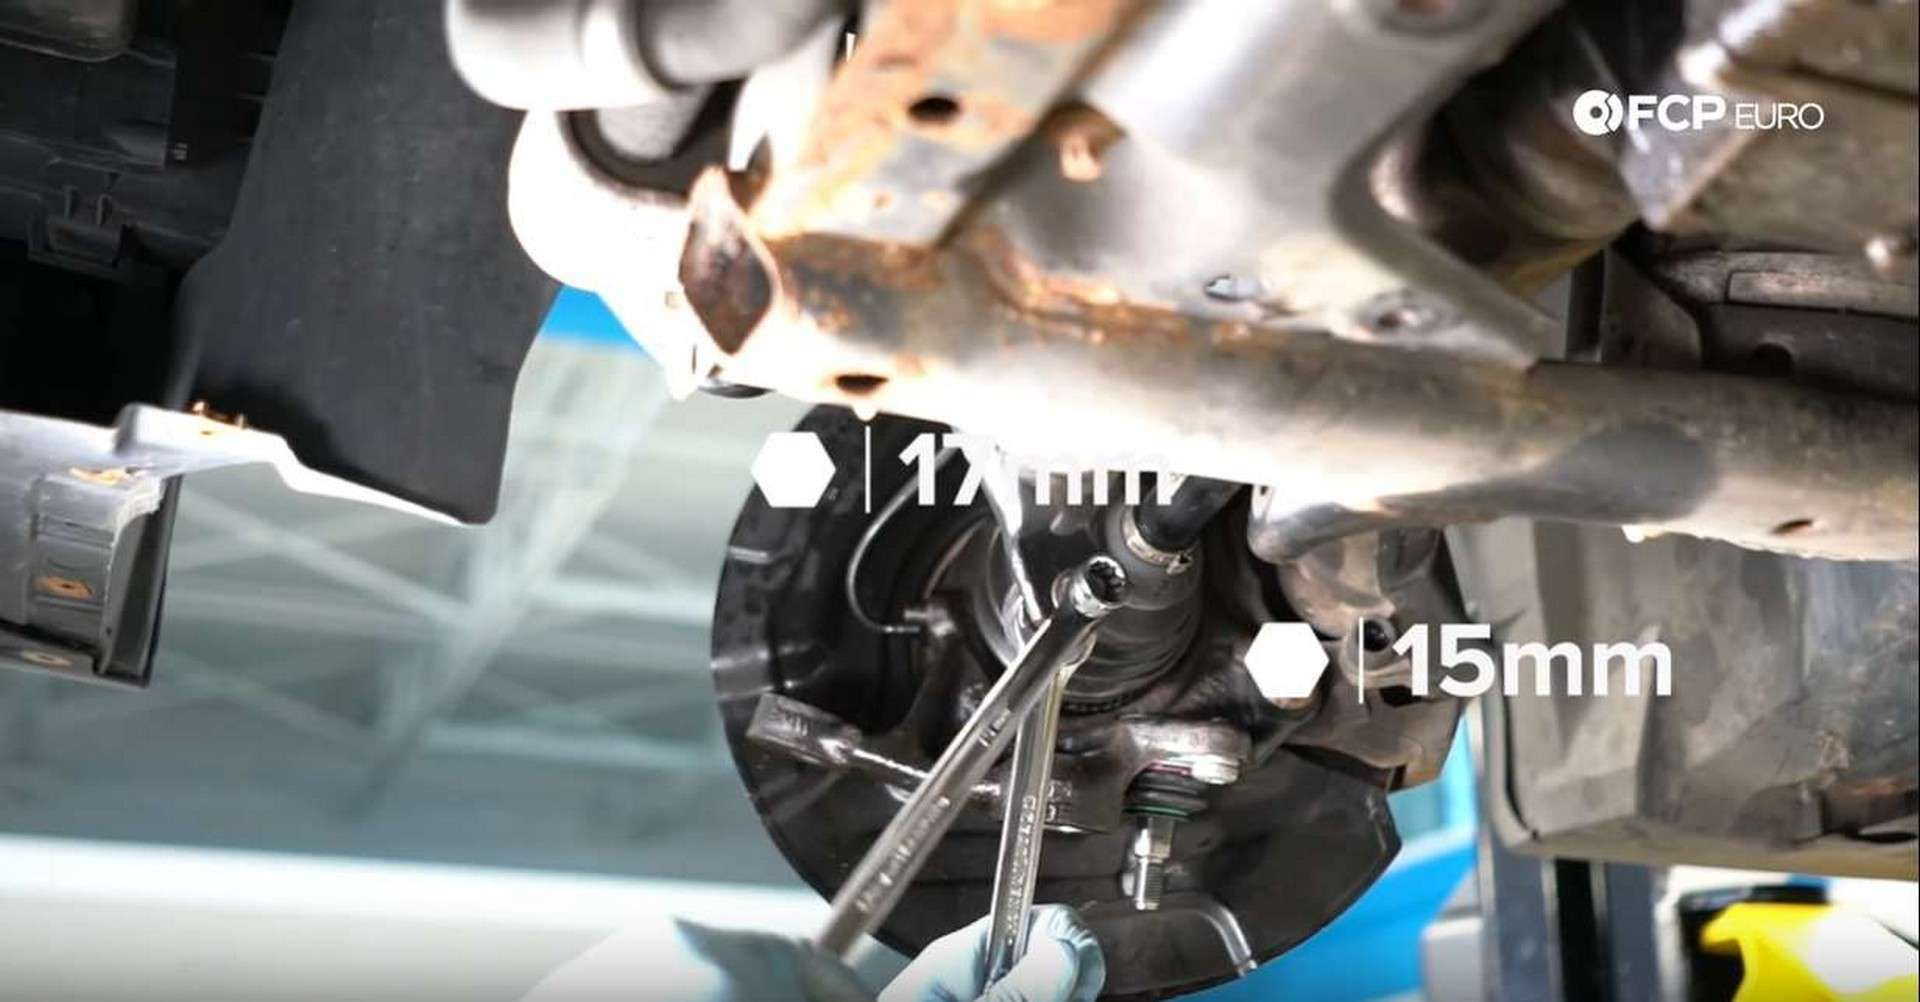 BMW Front Suspension Refresh loosening end link on sway bar